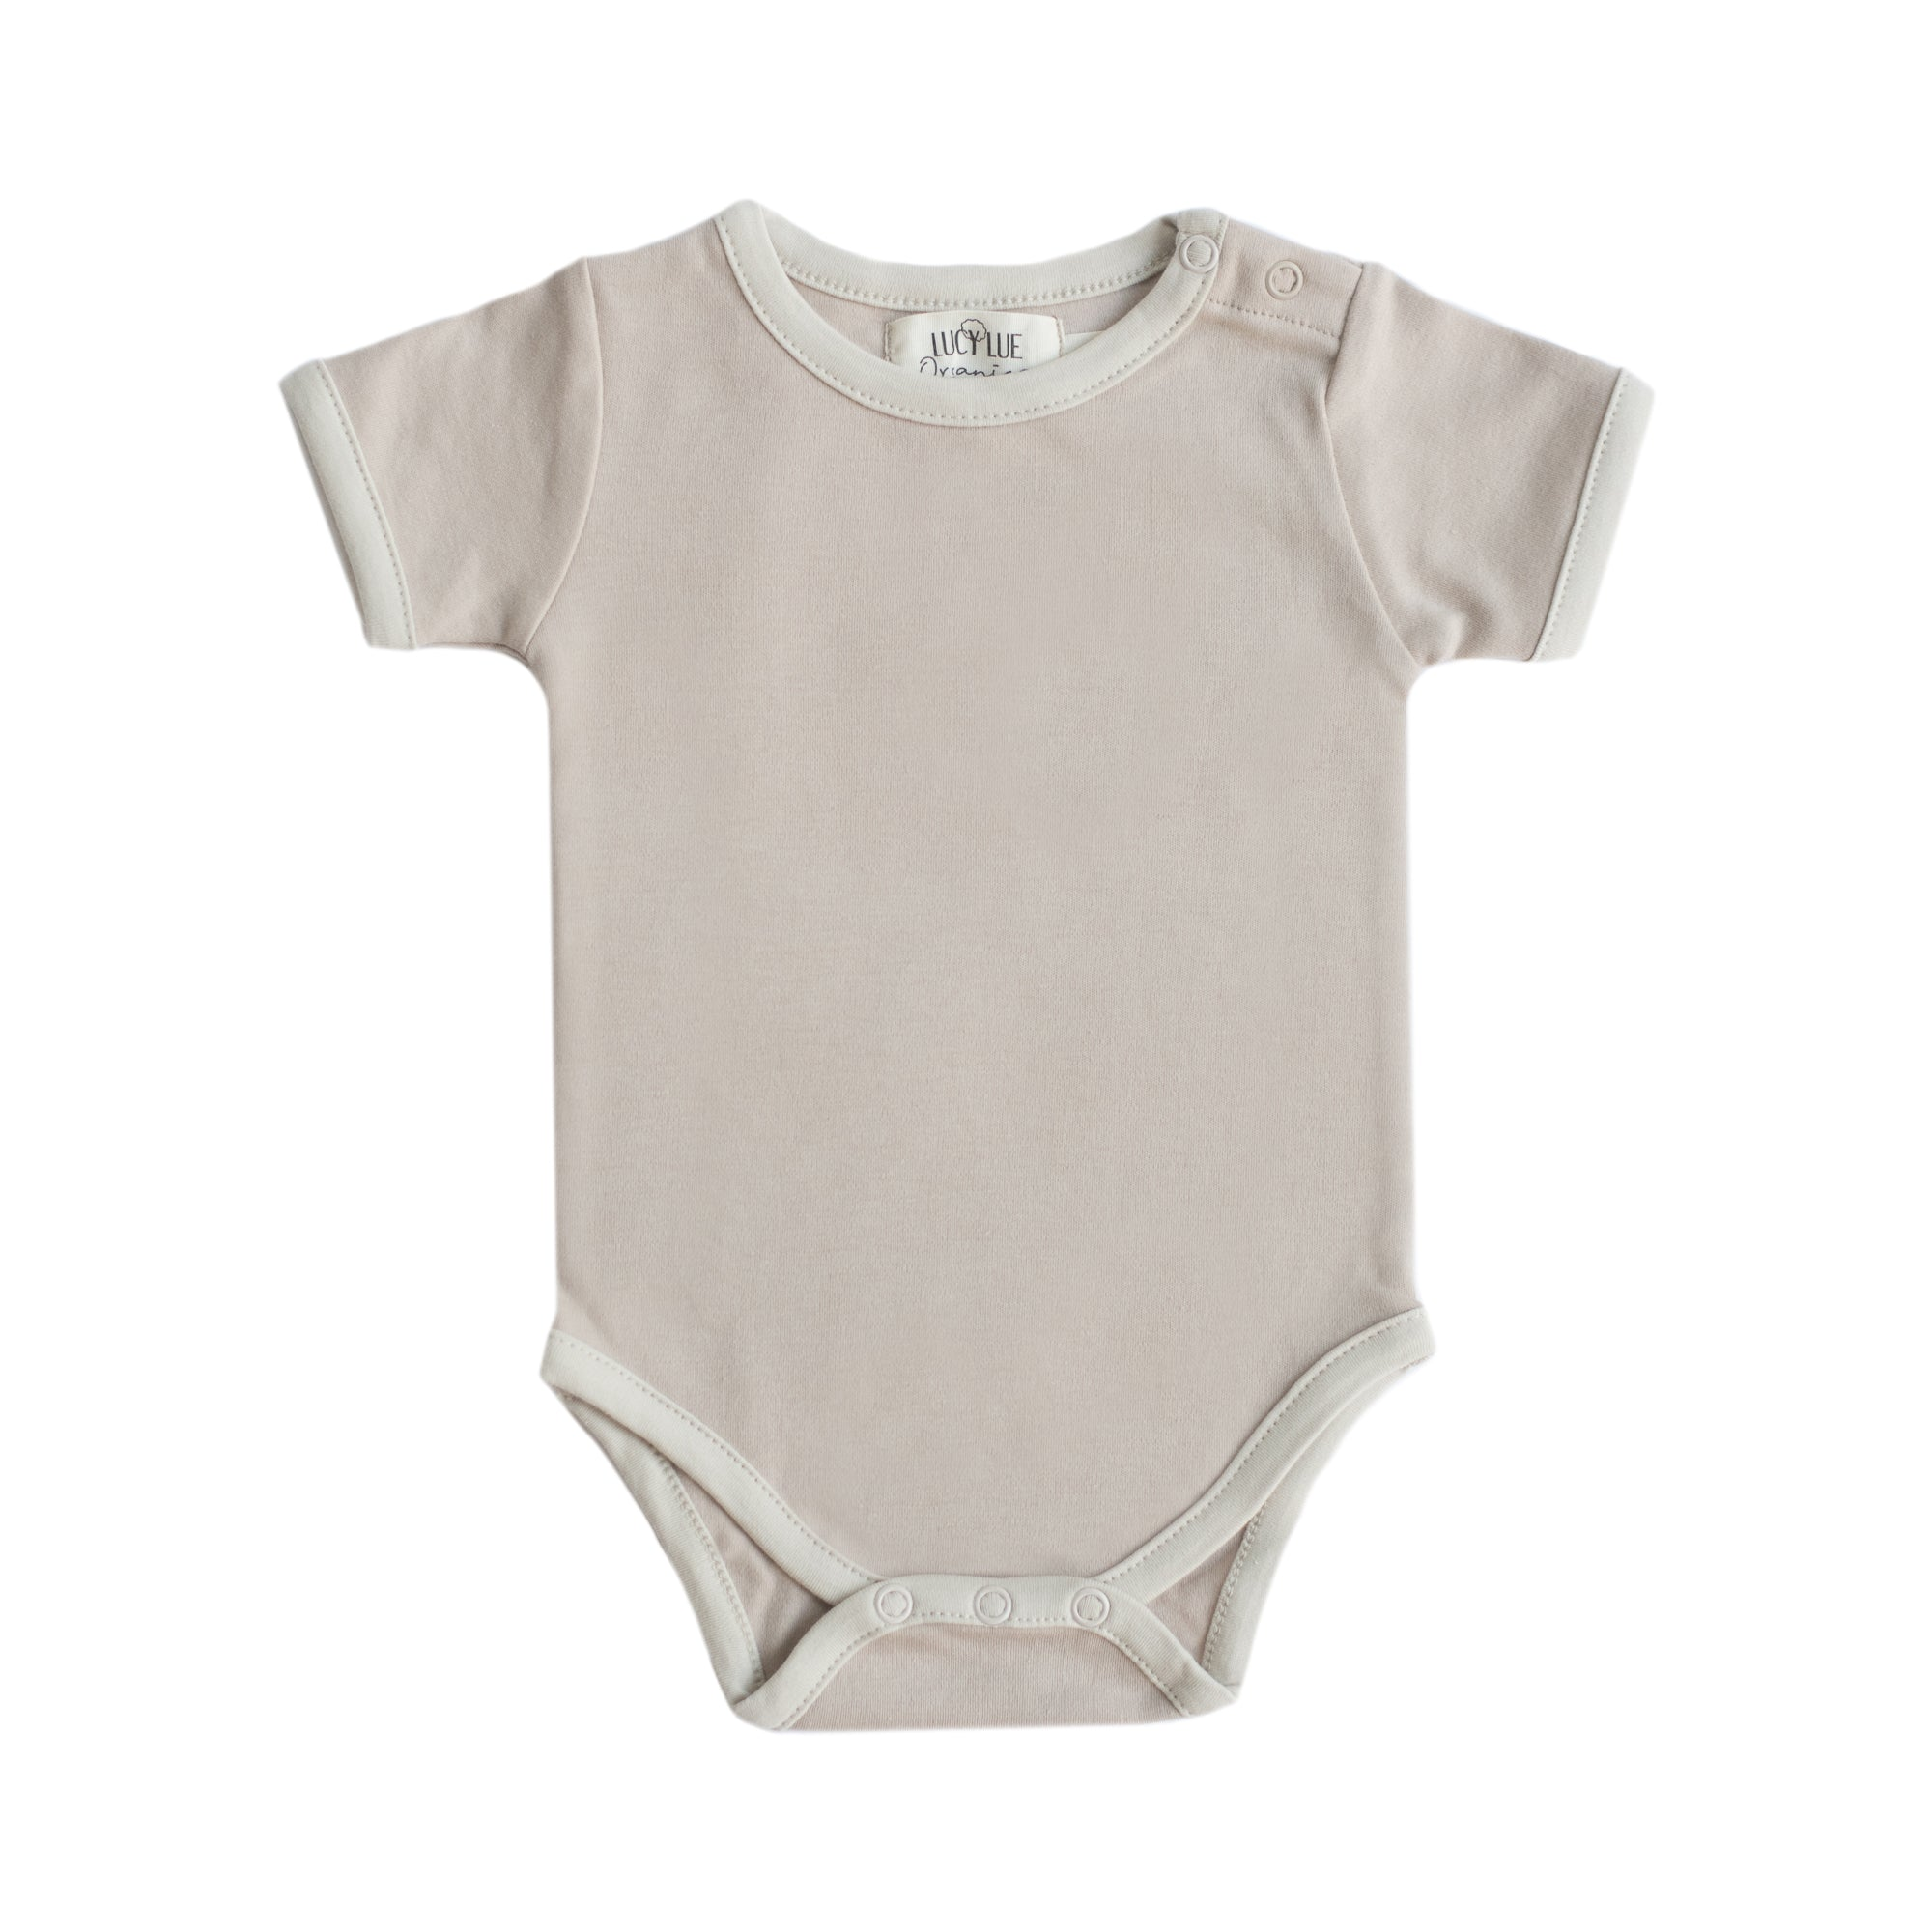 Organic 2-tone short sleeve bodysuit by Lucy Lue Organics. If you are looking for organic baby clothes, Lucy Lue Organics is the best baby brand. Retro baby bodysuit. Modern organic baby clothing. Soft baby clothes. Organic rompers in gender neutral colors. gender neutral baby clothes. Unisex baby clothes